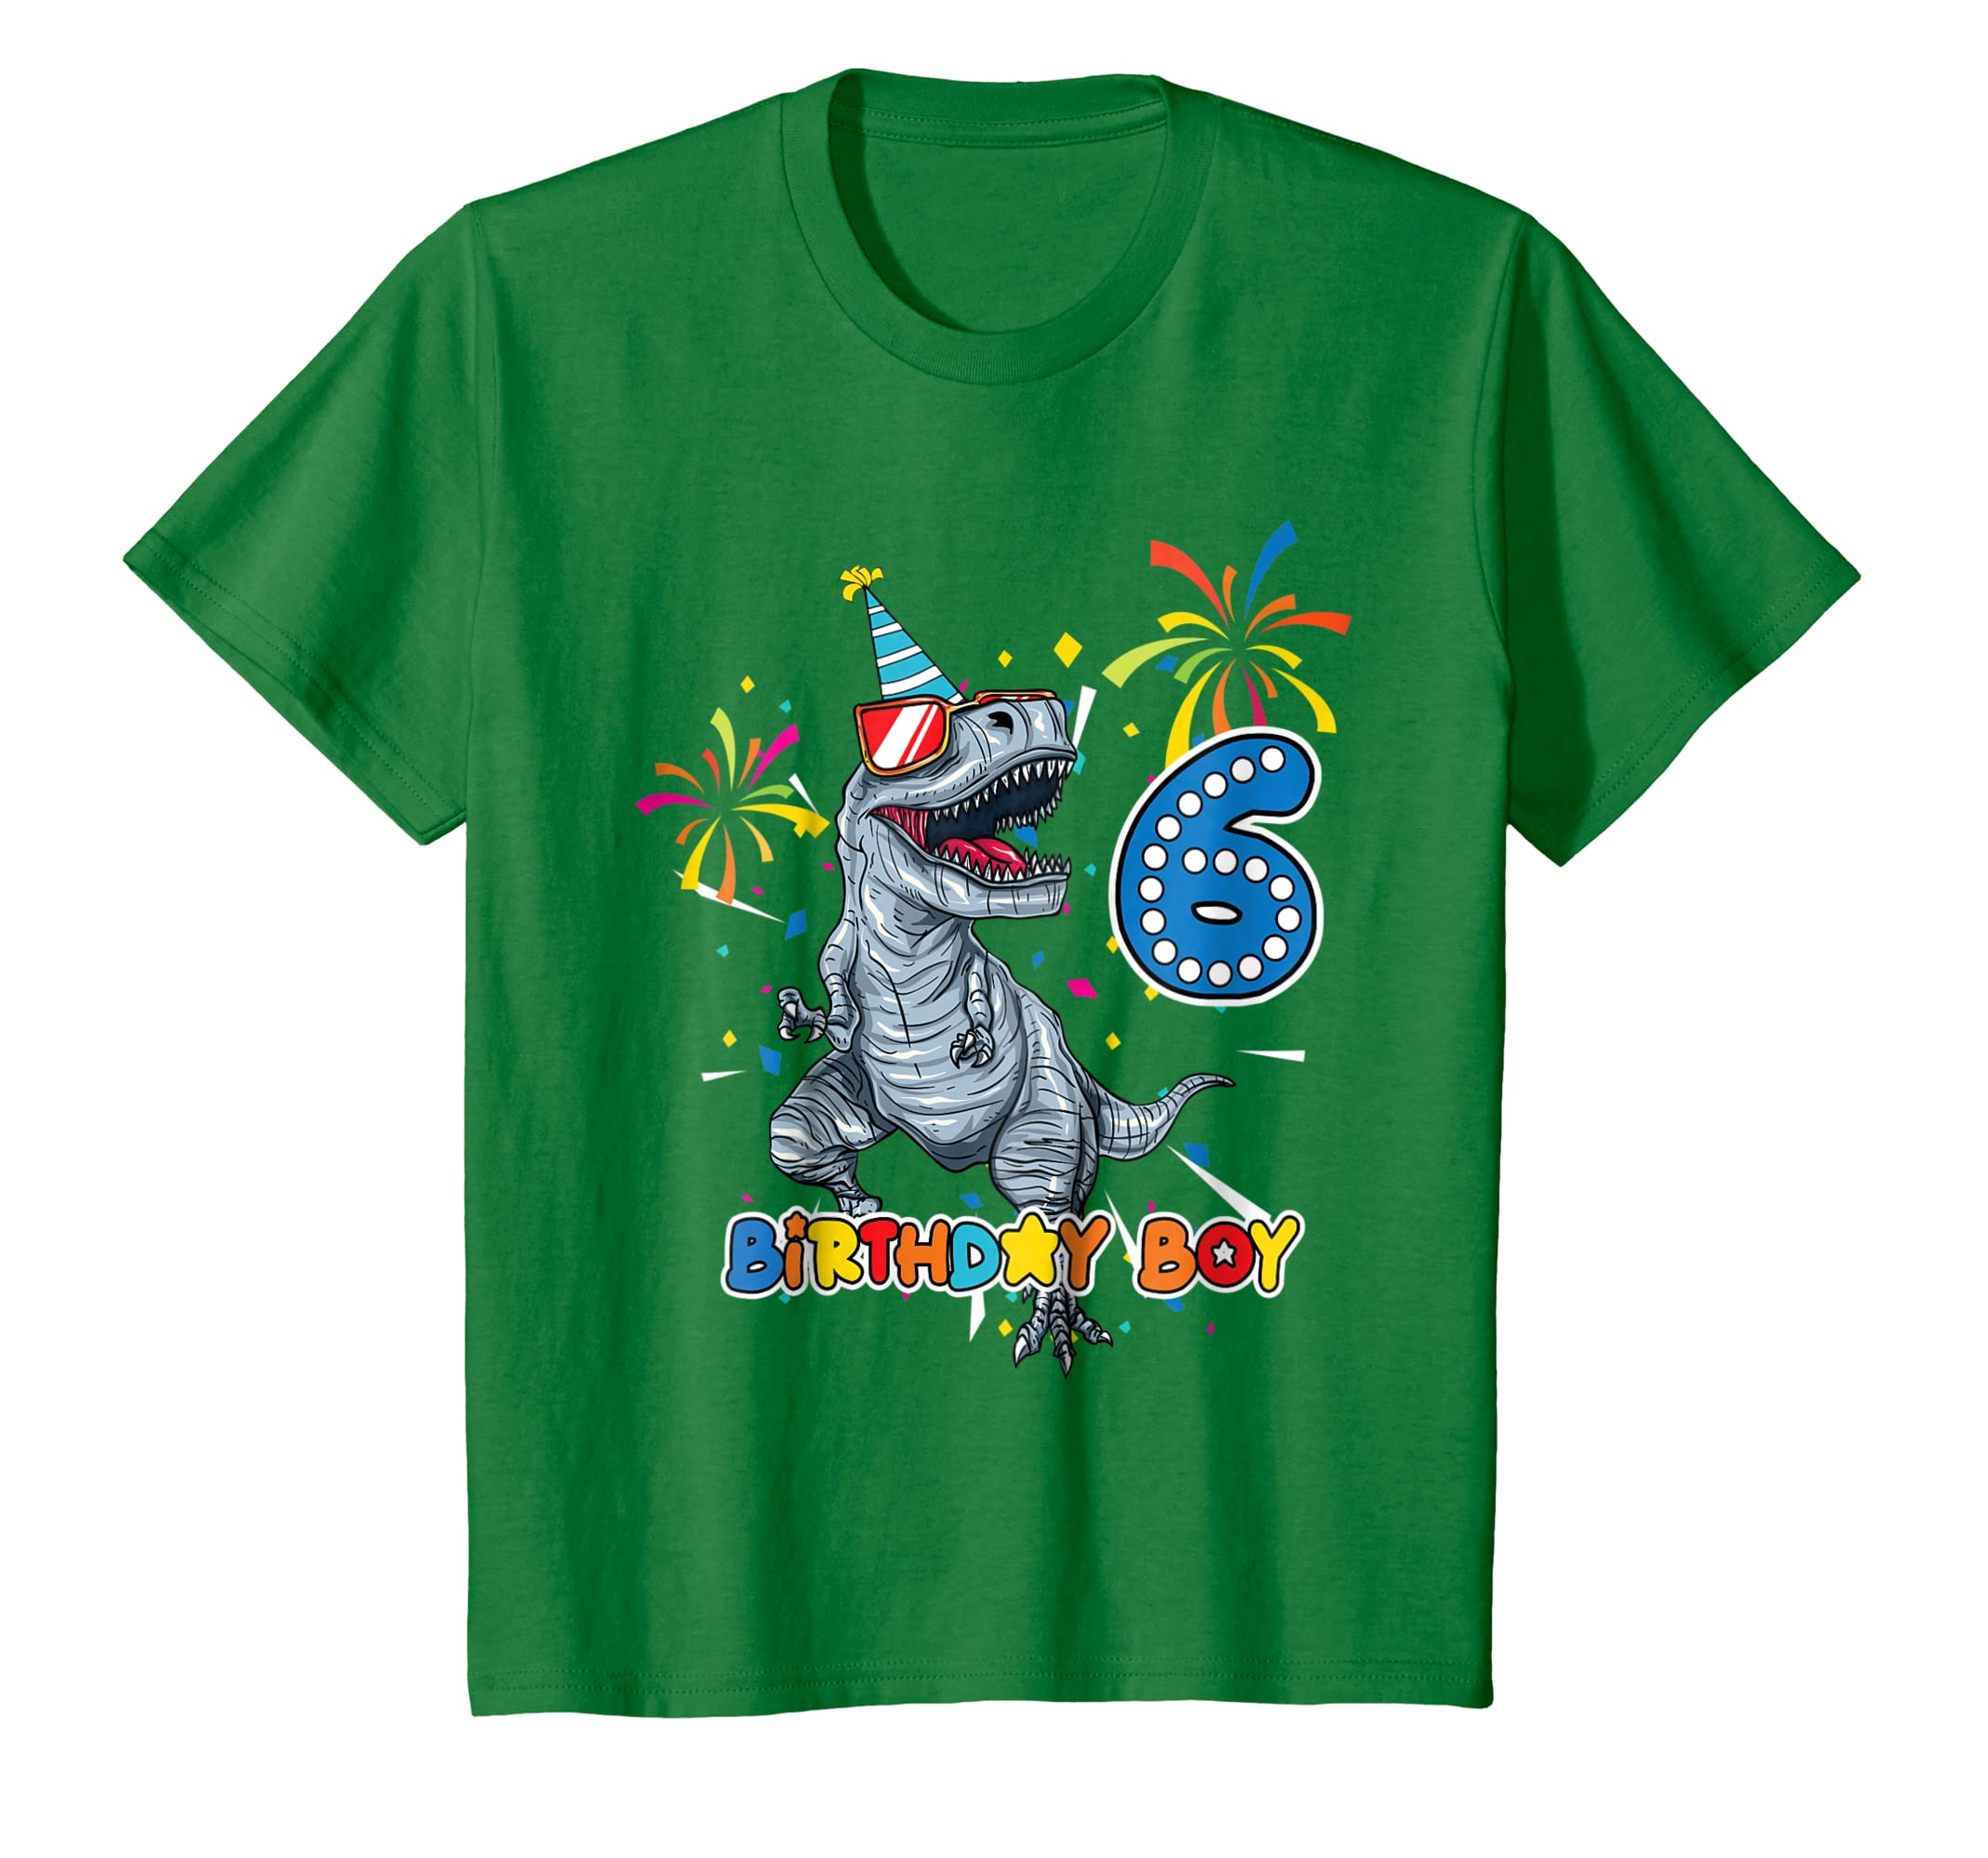 9d8a6dde4 Amazon.com: It's My 6TH Birthday Shirt Dinosaur Party for 6 year old boy:  Clothing